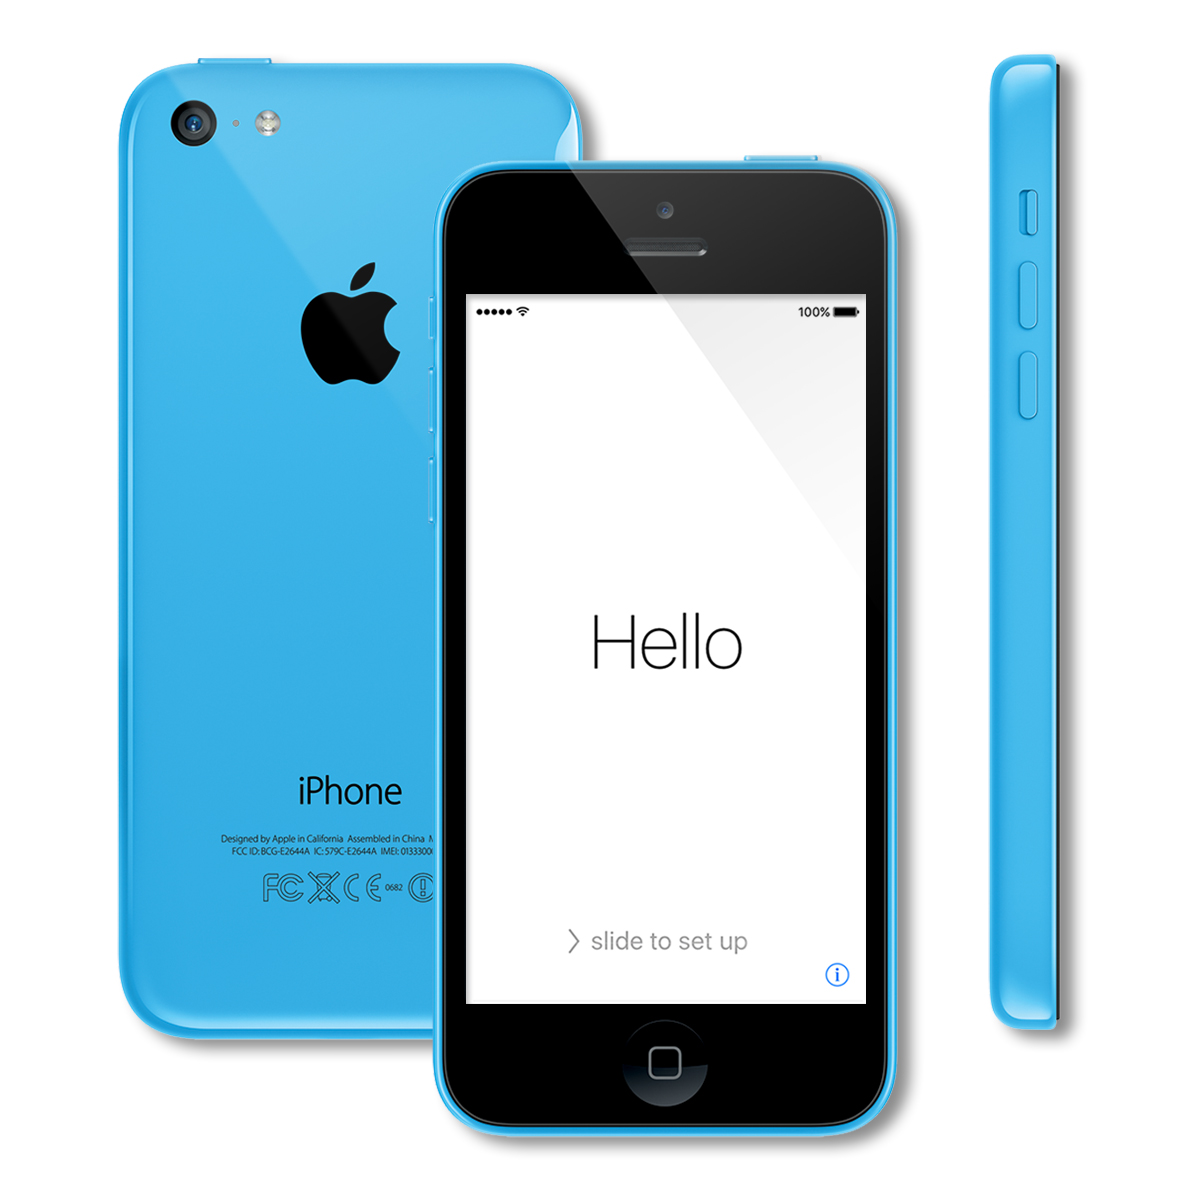 apple iphone 5c smartphone 16gb at t no contract ebay. Black Bedroom Furniture Sets. Home Design Ideas